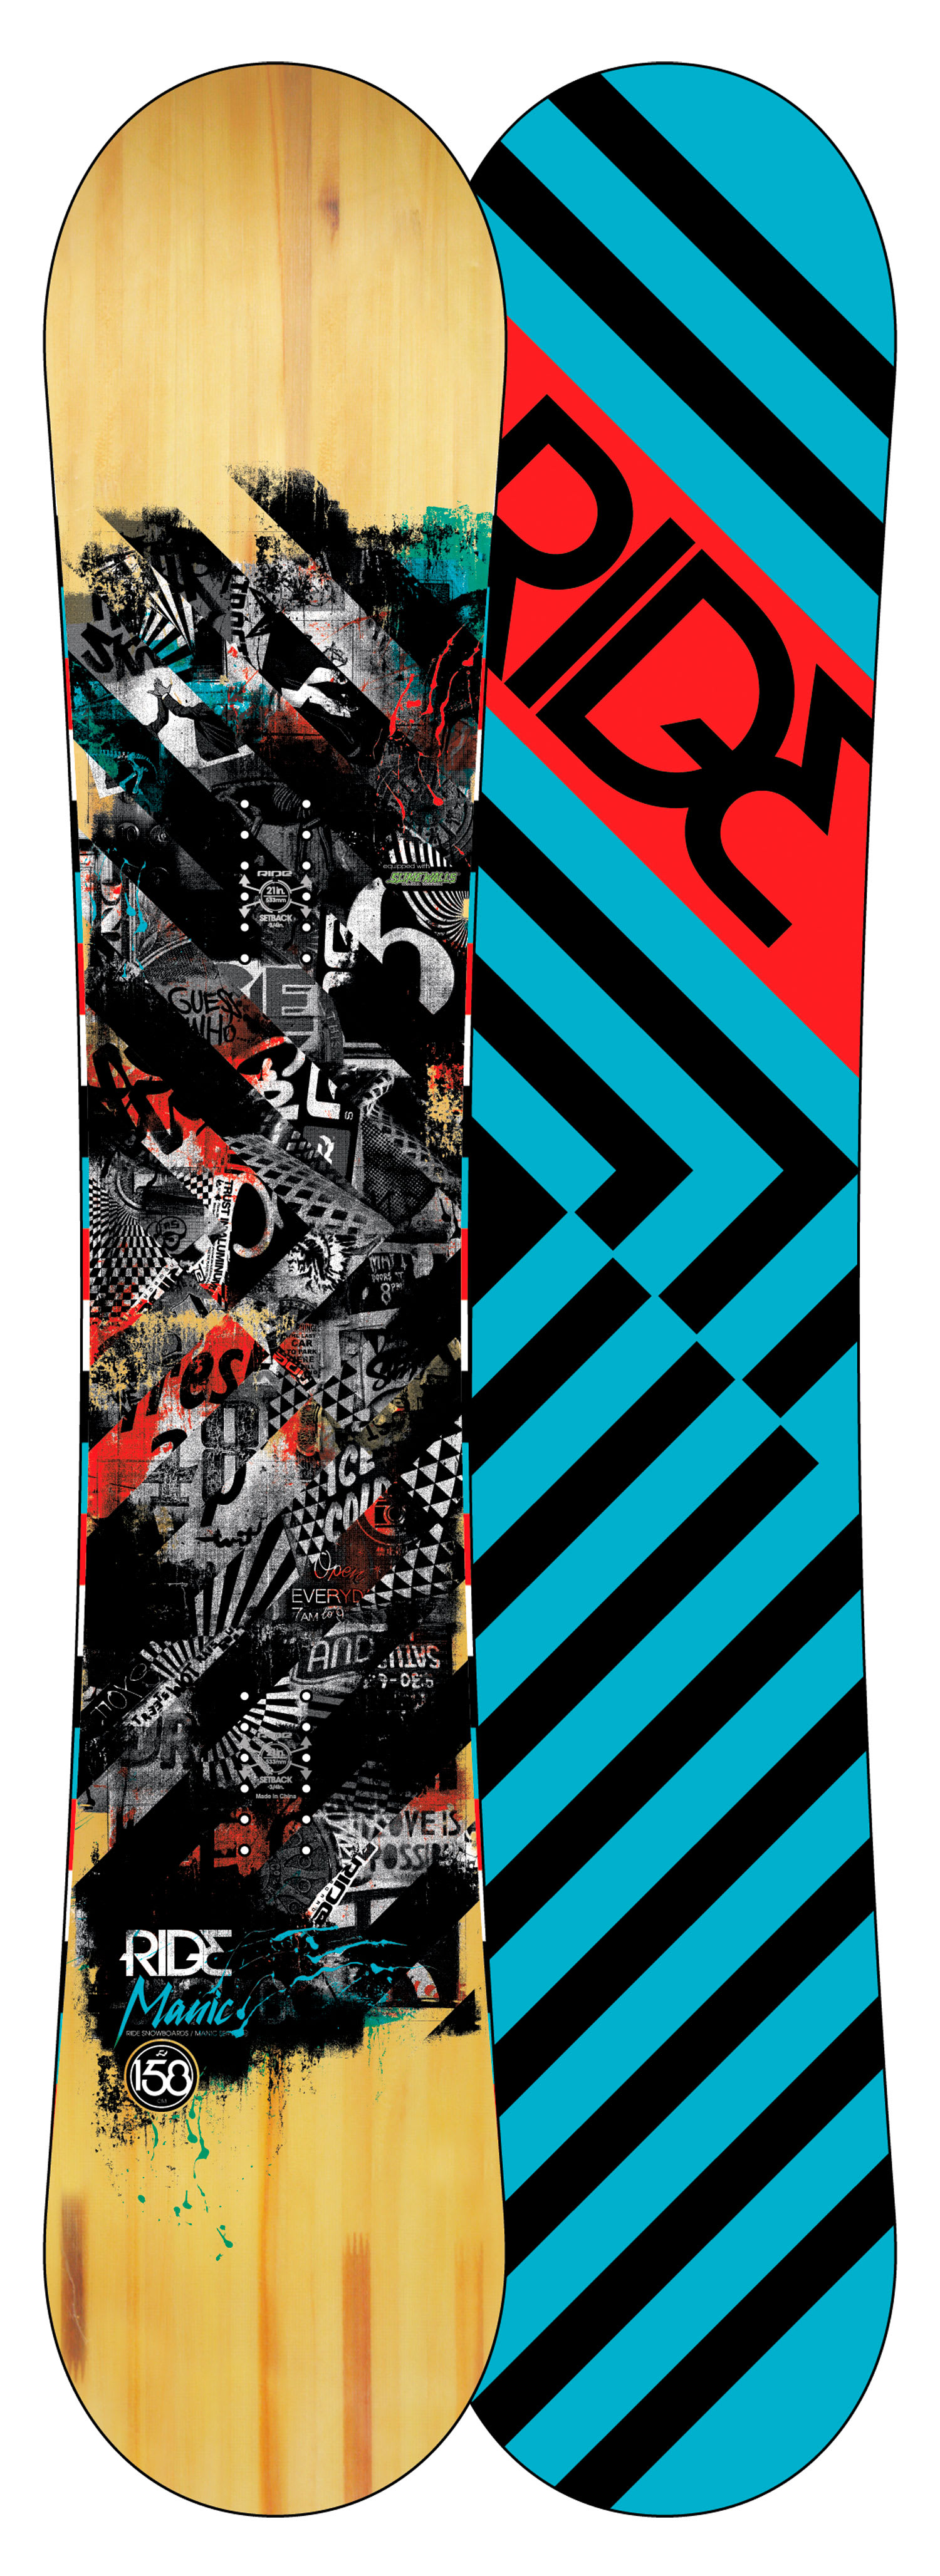 Shop for Ride Manic Snowboard 158 - Men's